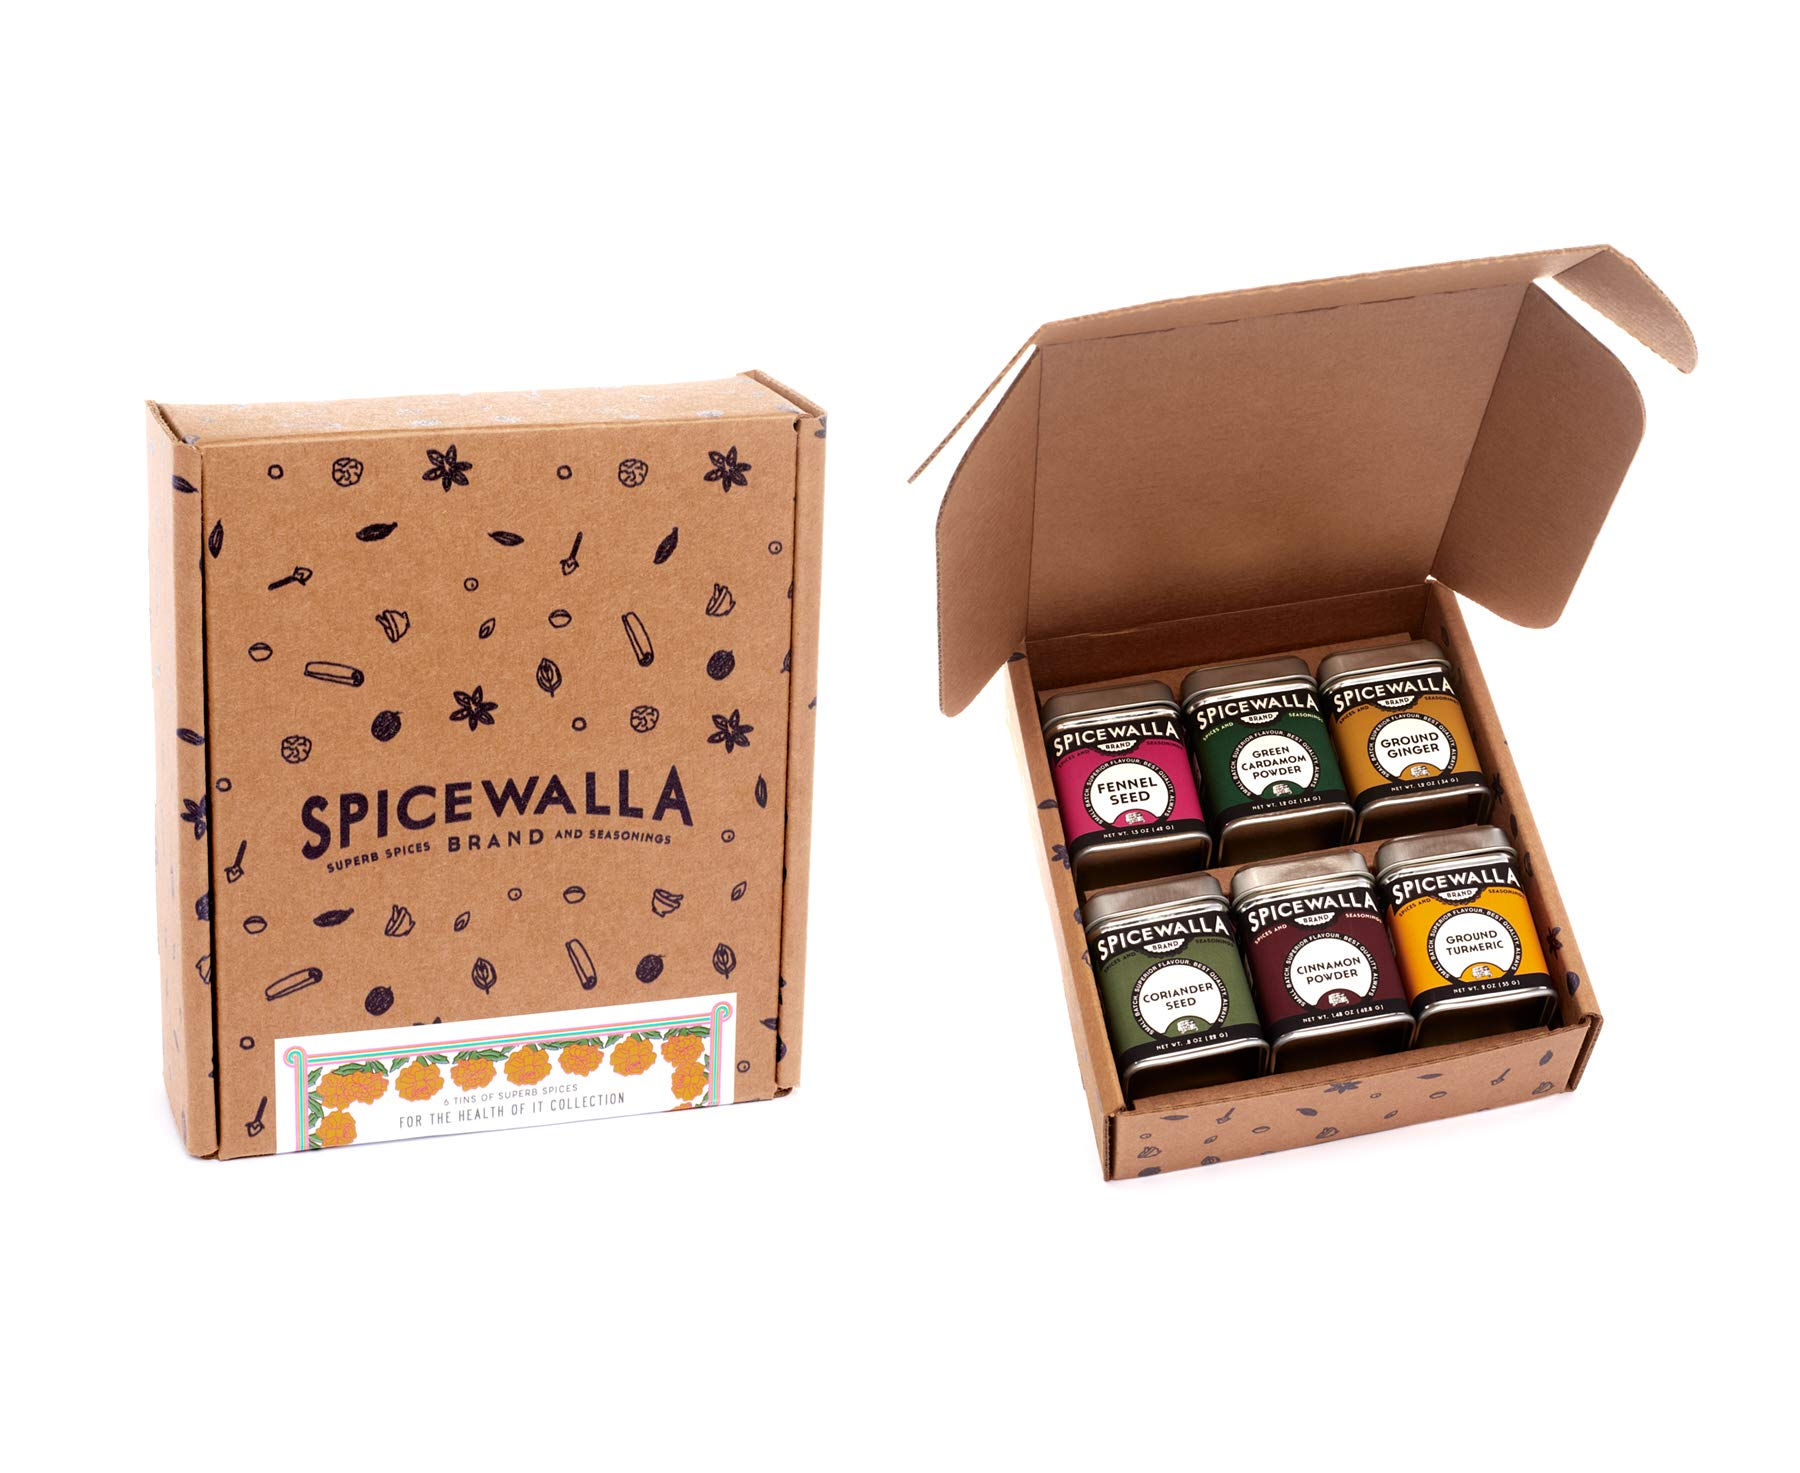 Spicewalla For The Health of It Spice Collection 6 Pack | Turmeric, Fennel Seed, Green Cardamom Powder, Ginger Powder, Coriander Seed, Cinnamon | Health-Focused Spices